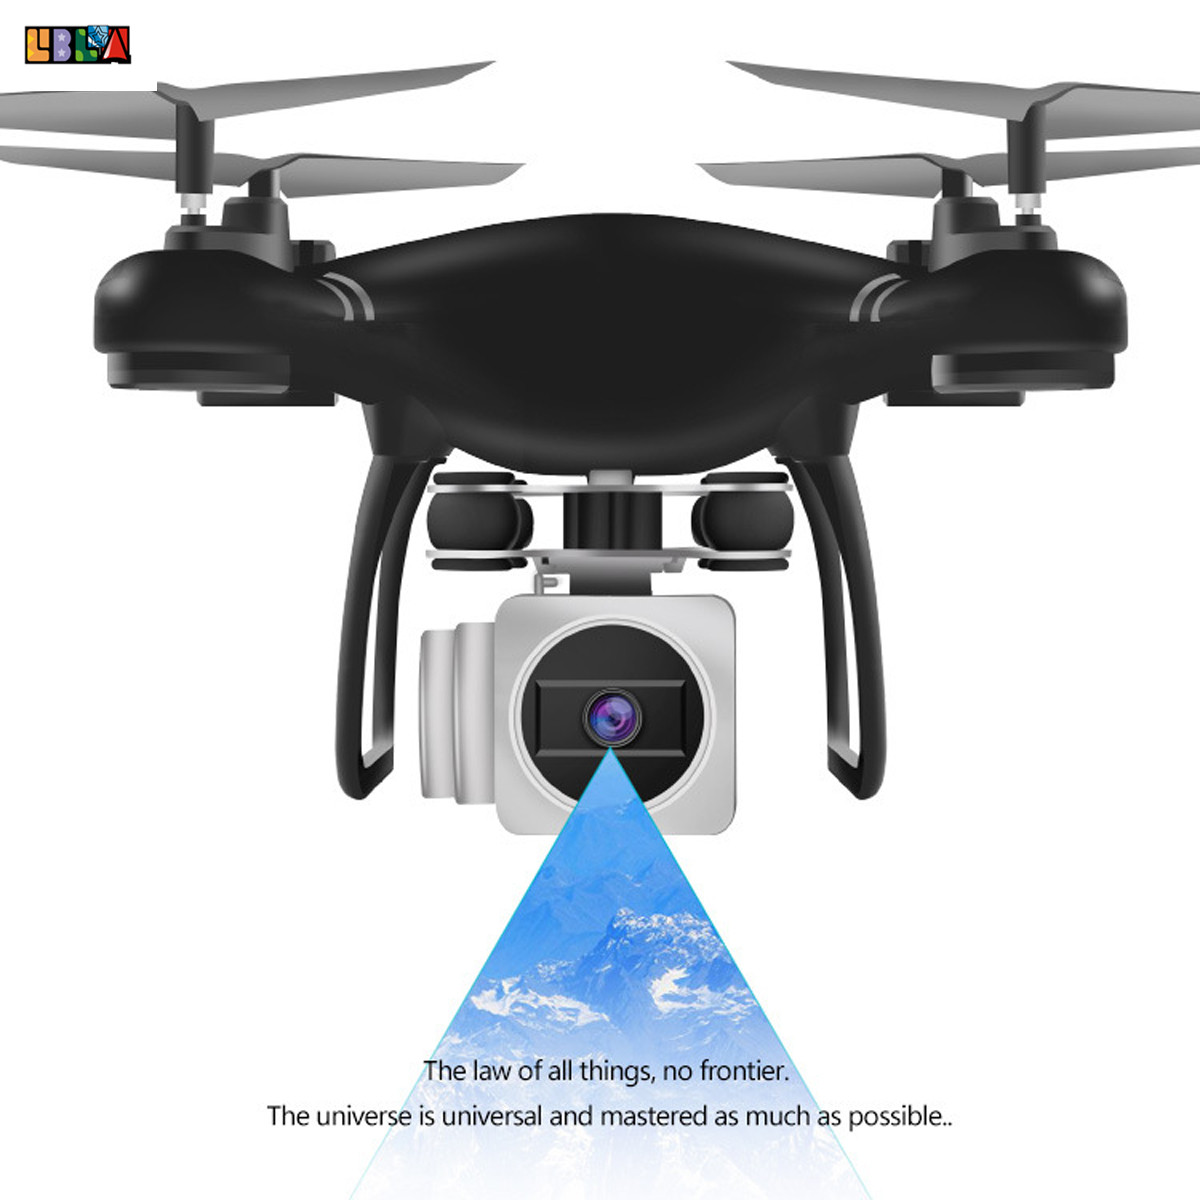 White/Black HJ14W Wide Angle Lens HD FPV RC Camera Drone RC 2.4GHz WiFi 2MP Six Axis Gyro remote control charging helicopter